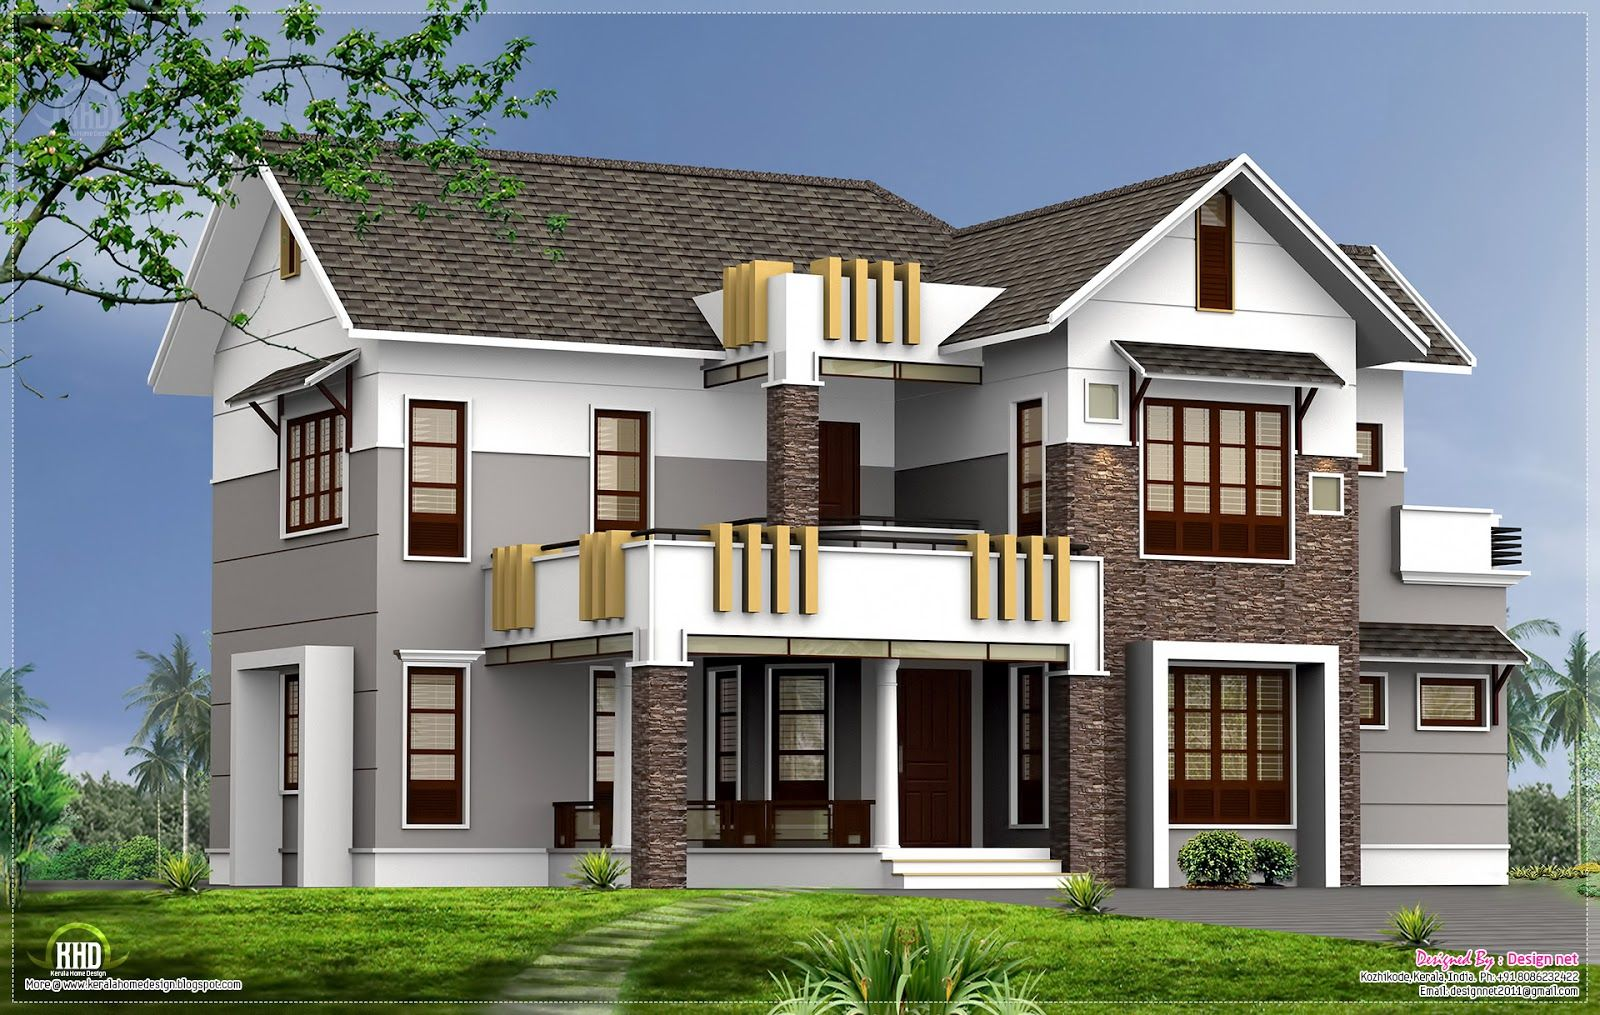 Pin By Amar Pegu On Dream Home House Design House House Plans